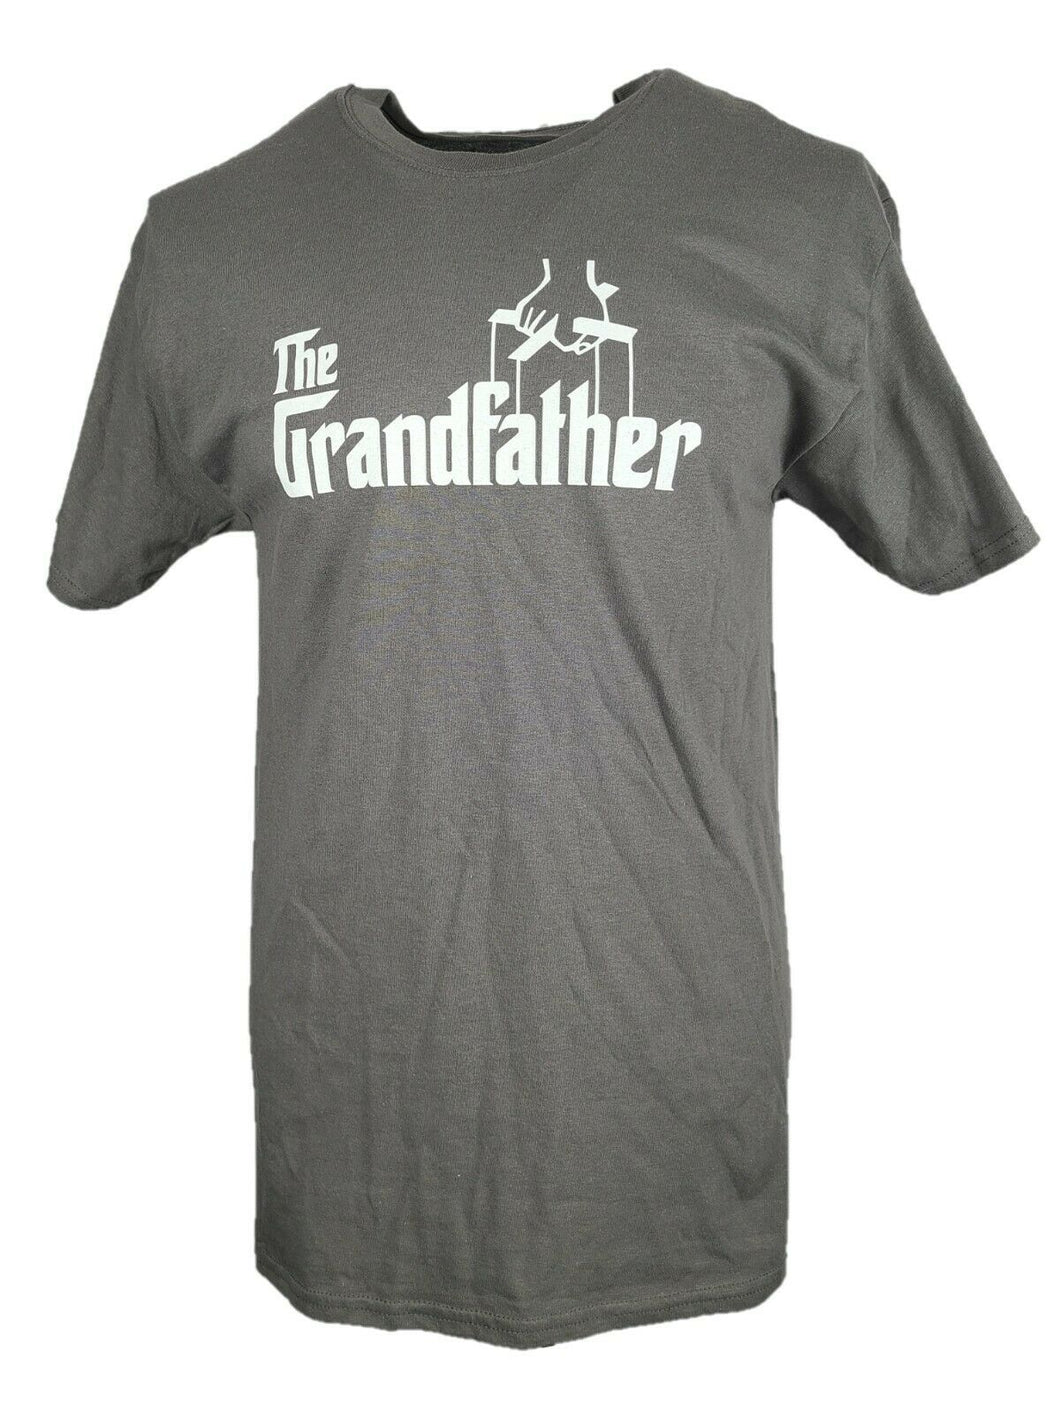 The God Father Graphic T Shirt Size Large Color Gray 100% Preshrunk Cotton